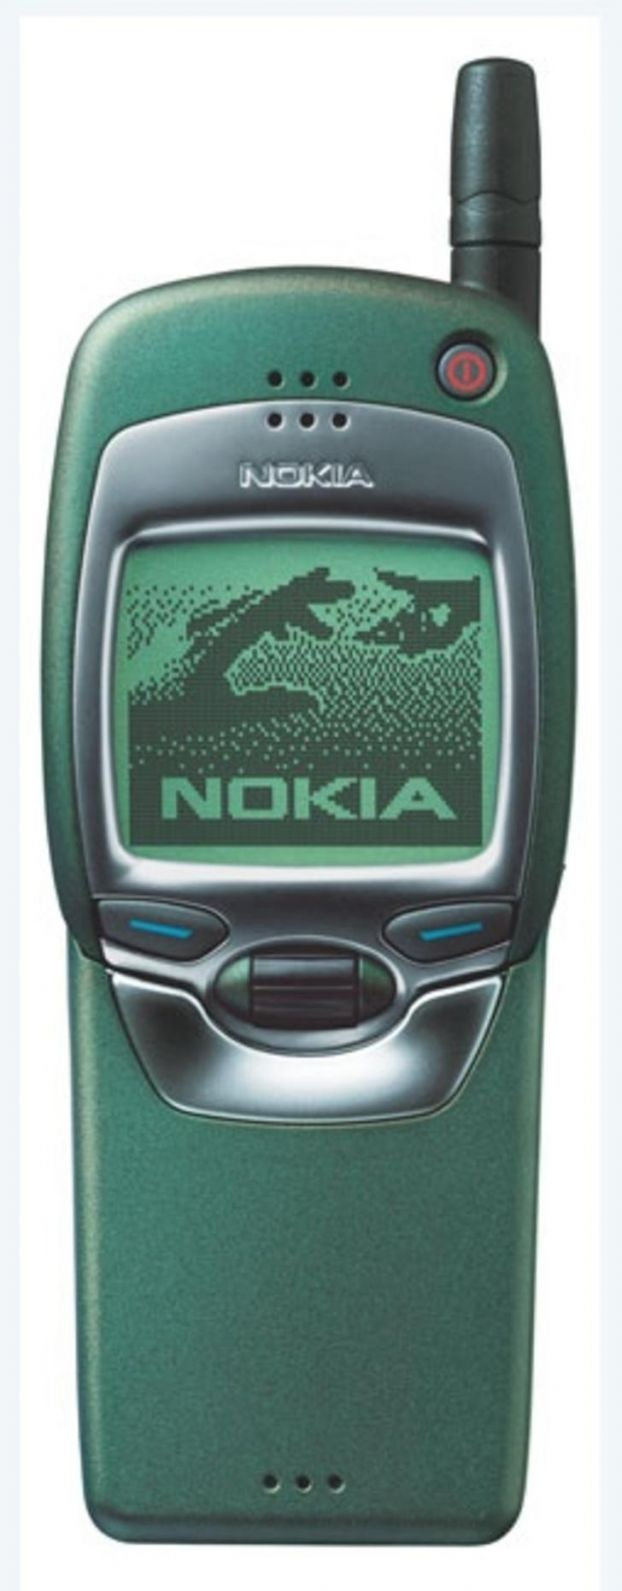 The Nokia 7110, one of the first test subjects of a WAP banking service we created for Nationwide Building Society in the UK in 1998.